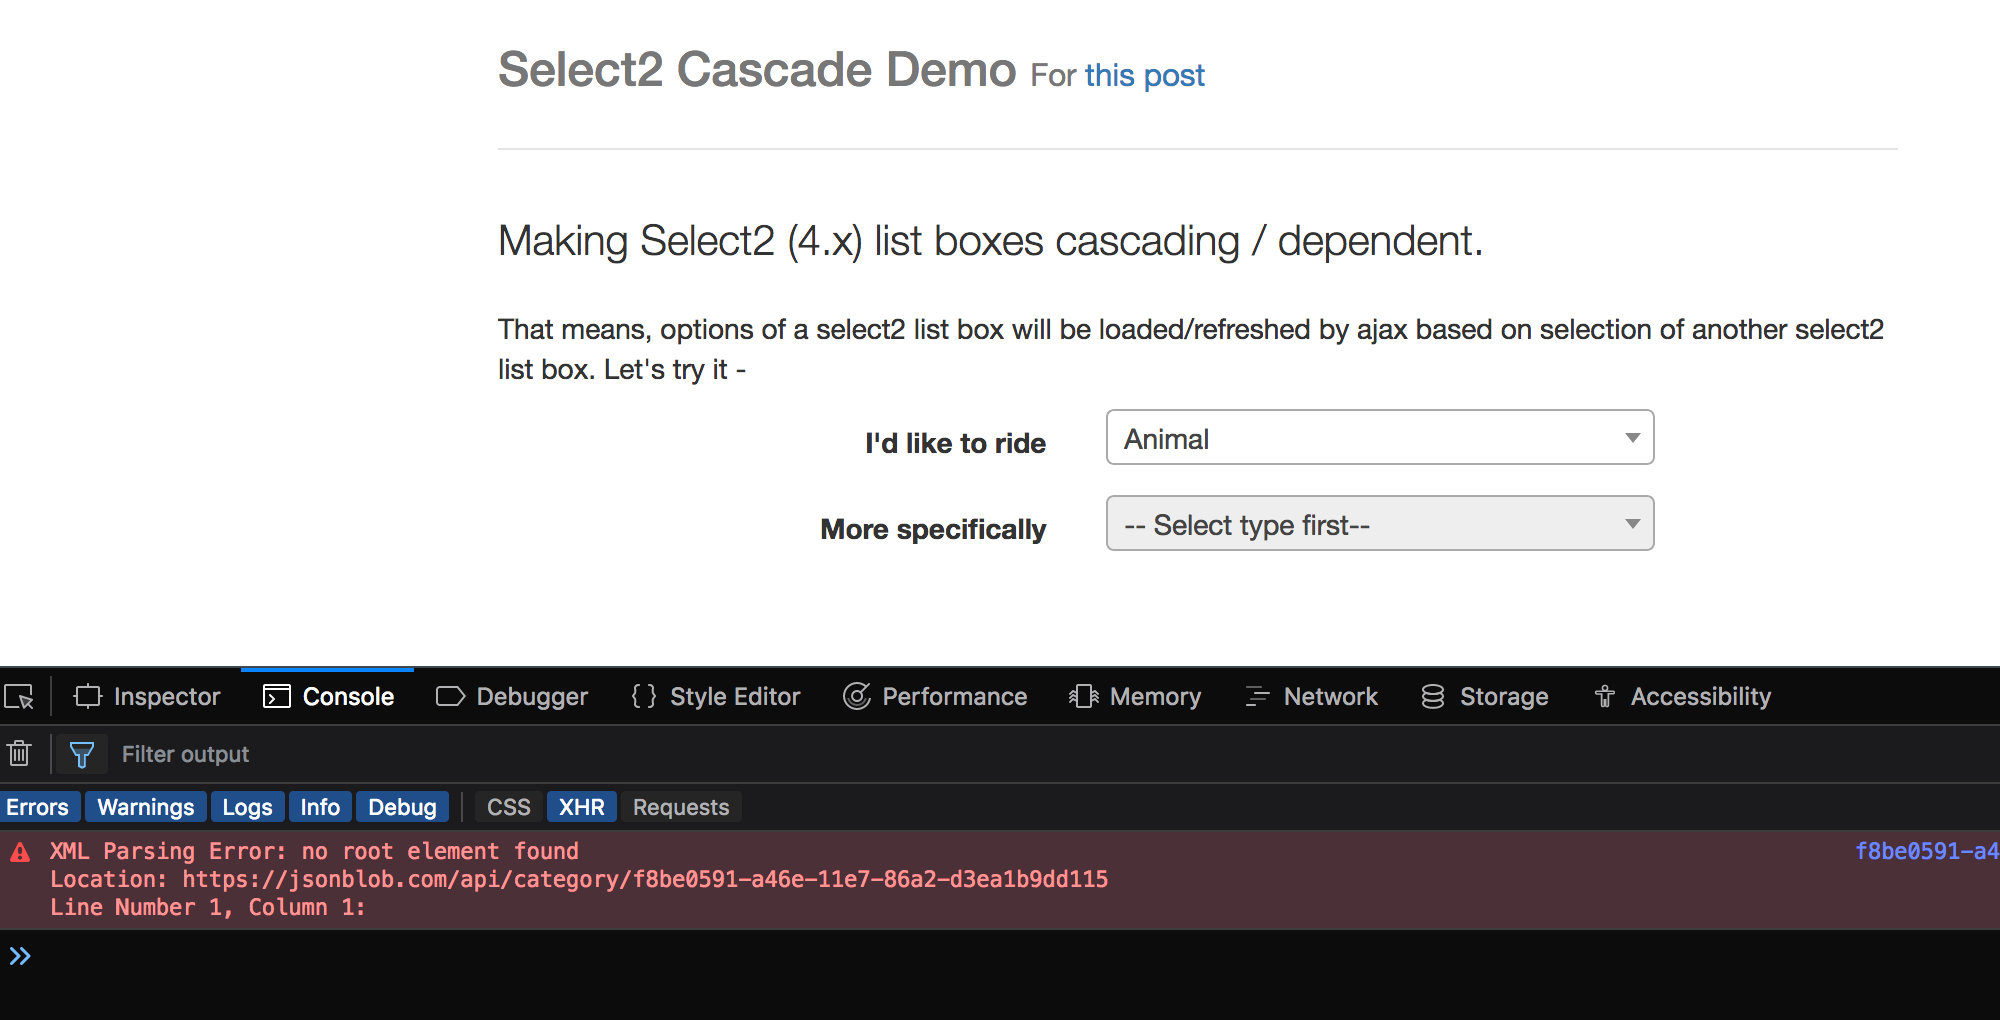 Making Select2 (4 x) list boxes cascading / dependent